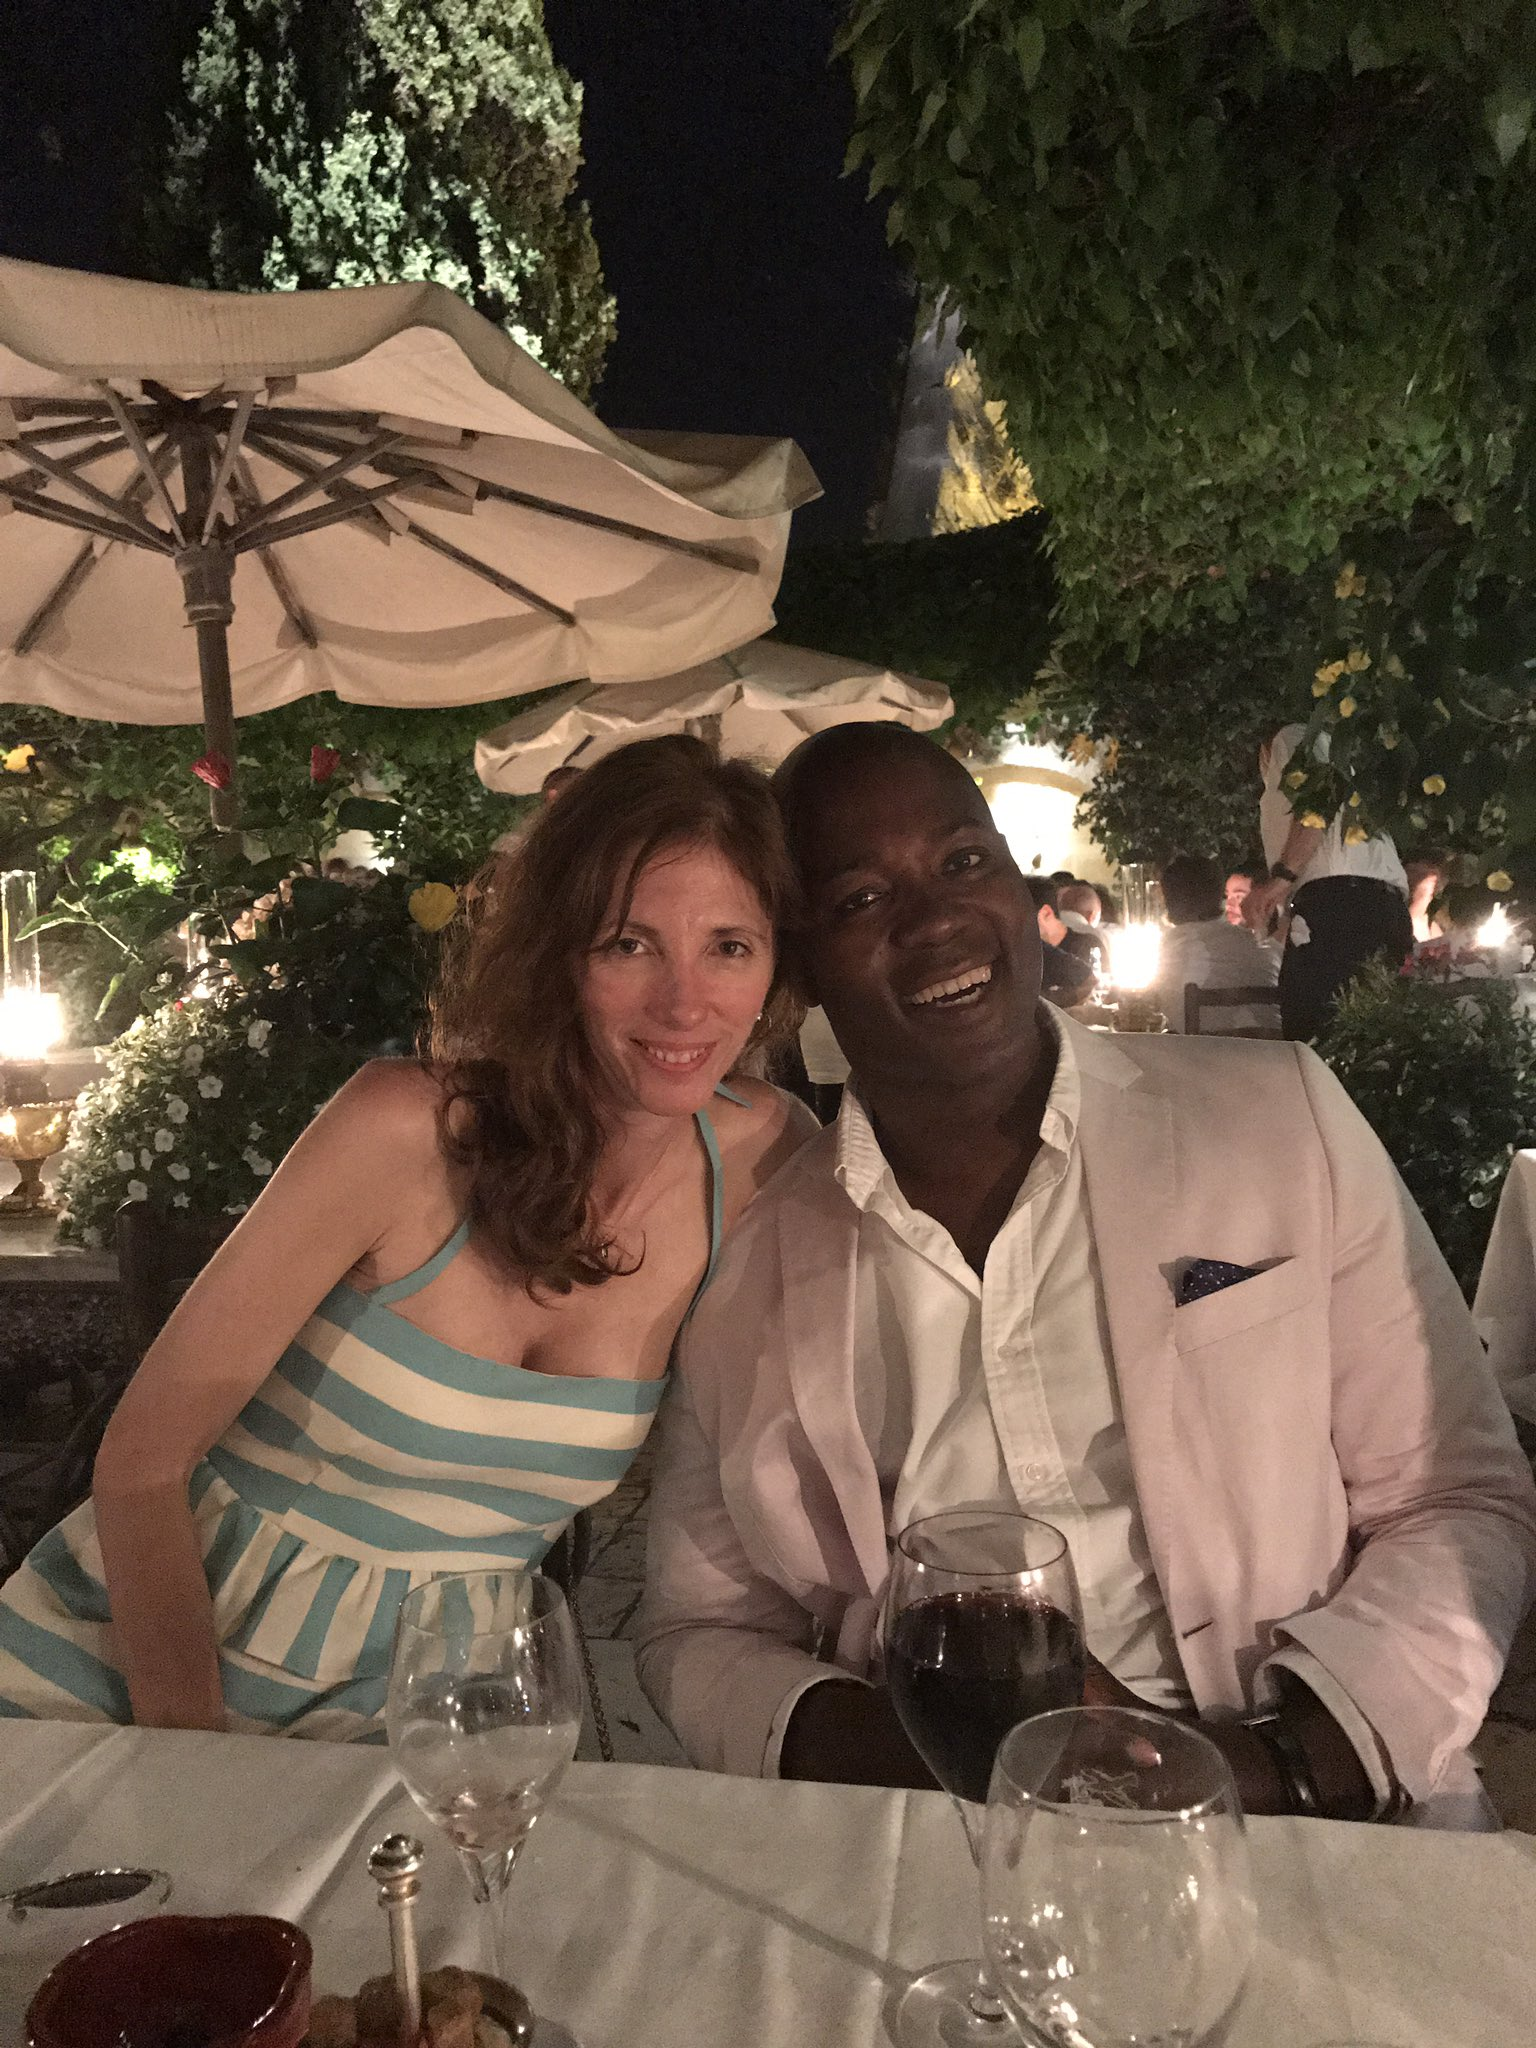 RT @ClaireBeale: Still going strong: Thursday night at the Colombe d'or with @saatchilondon's Magnus Djaba https://t.co/wqYhkmoVLF